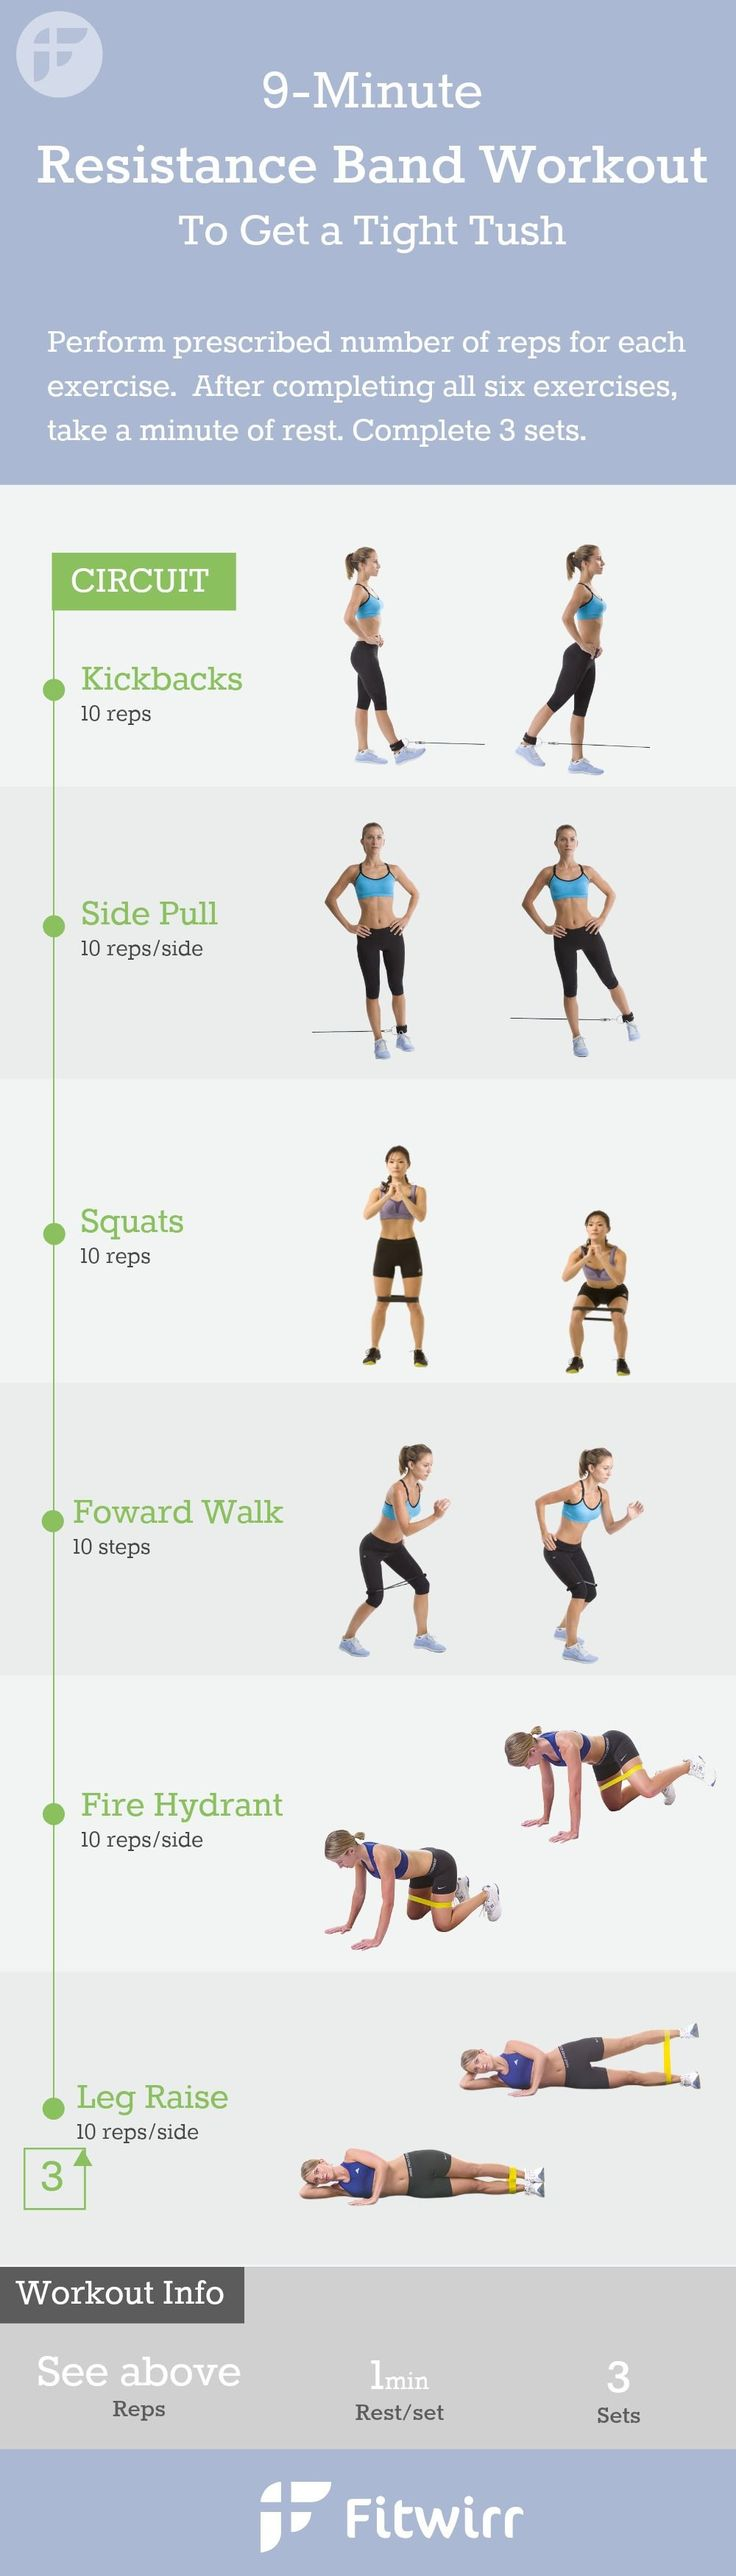 discounted asics australia 9 Minute Resistance Band Exercises for women  You don  39 t have to lift heavy dumbbells or a medicine ball to get a great workout at home  Follow this 9 minute exercise band workouts to firm your butt  legs and inner thighs